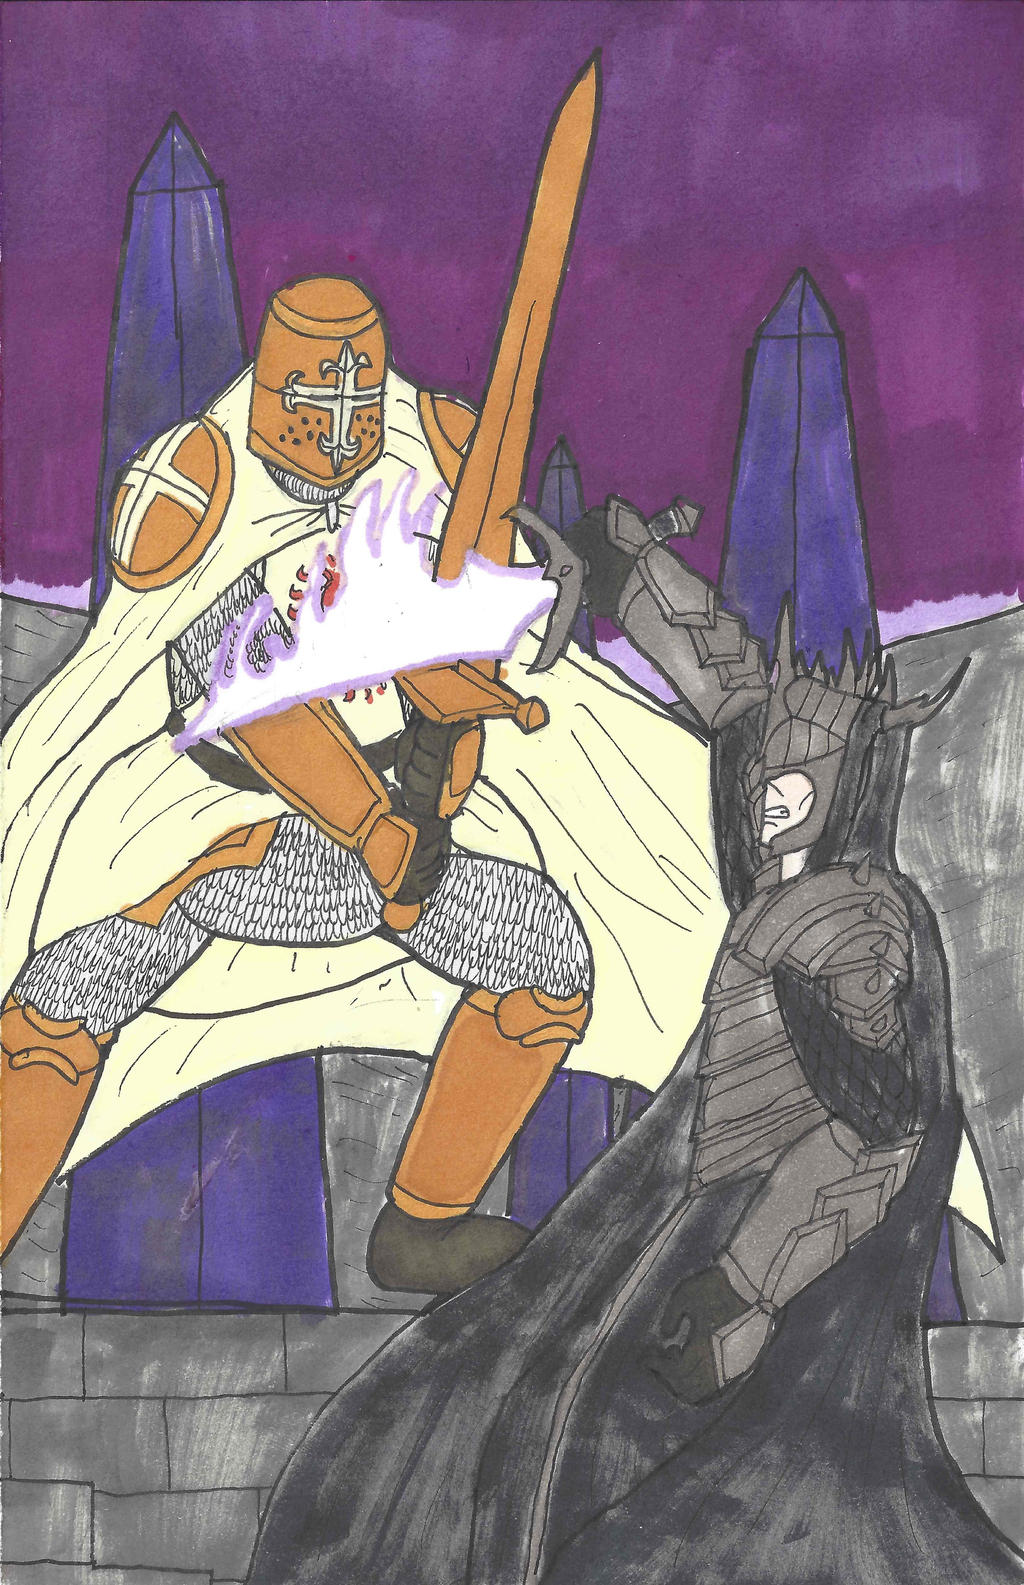 Lord-Commander Verners vs the Witch-King of Grail